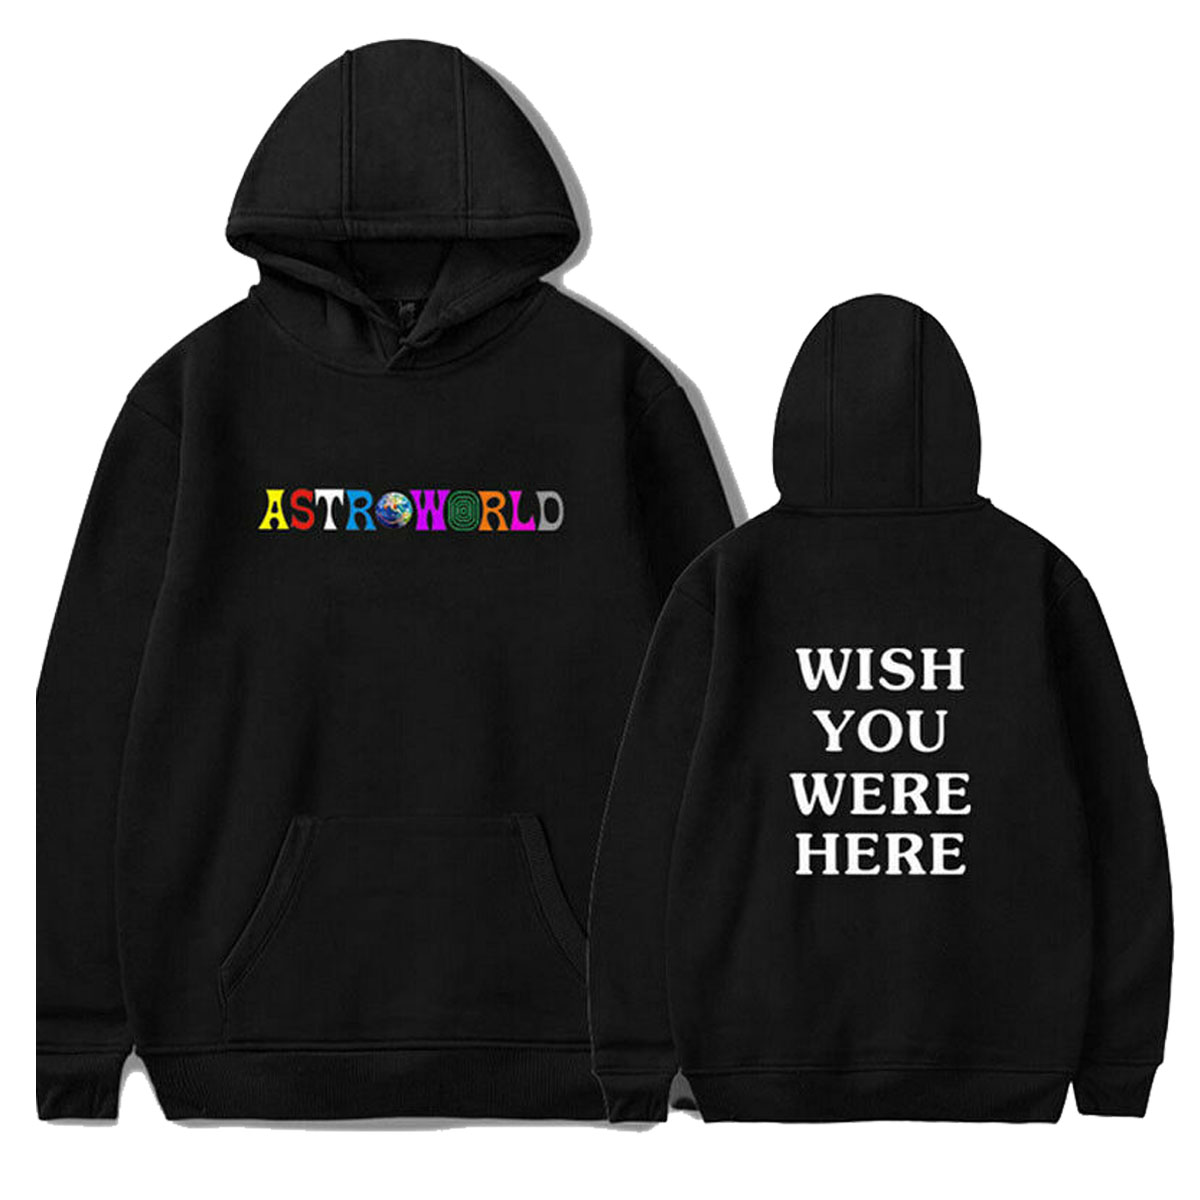 2019 Men Women Hip-hop Hoodie Basic Skateboard Tops Outdoor Running Sports Sweatshirts Sweater